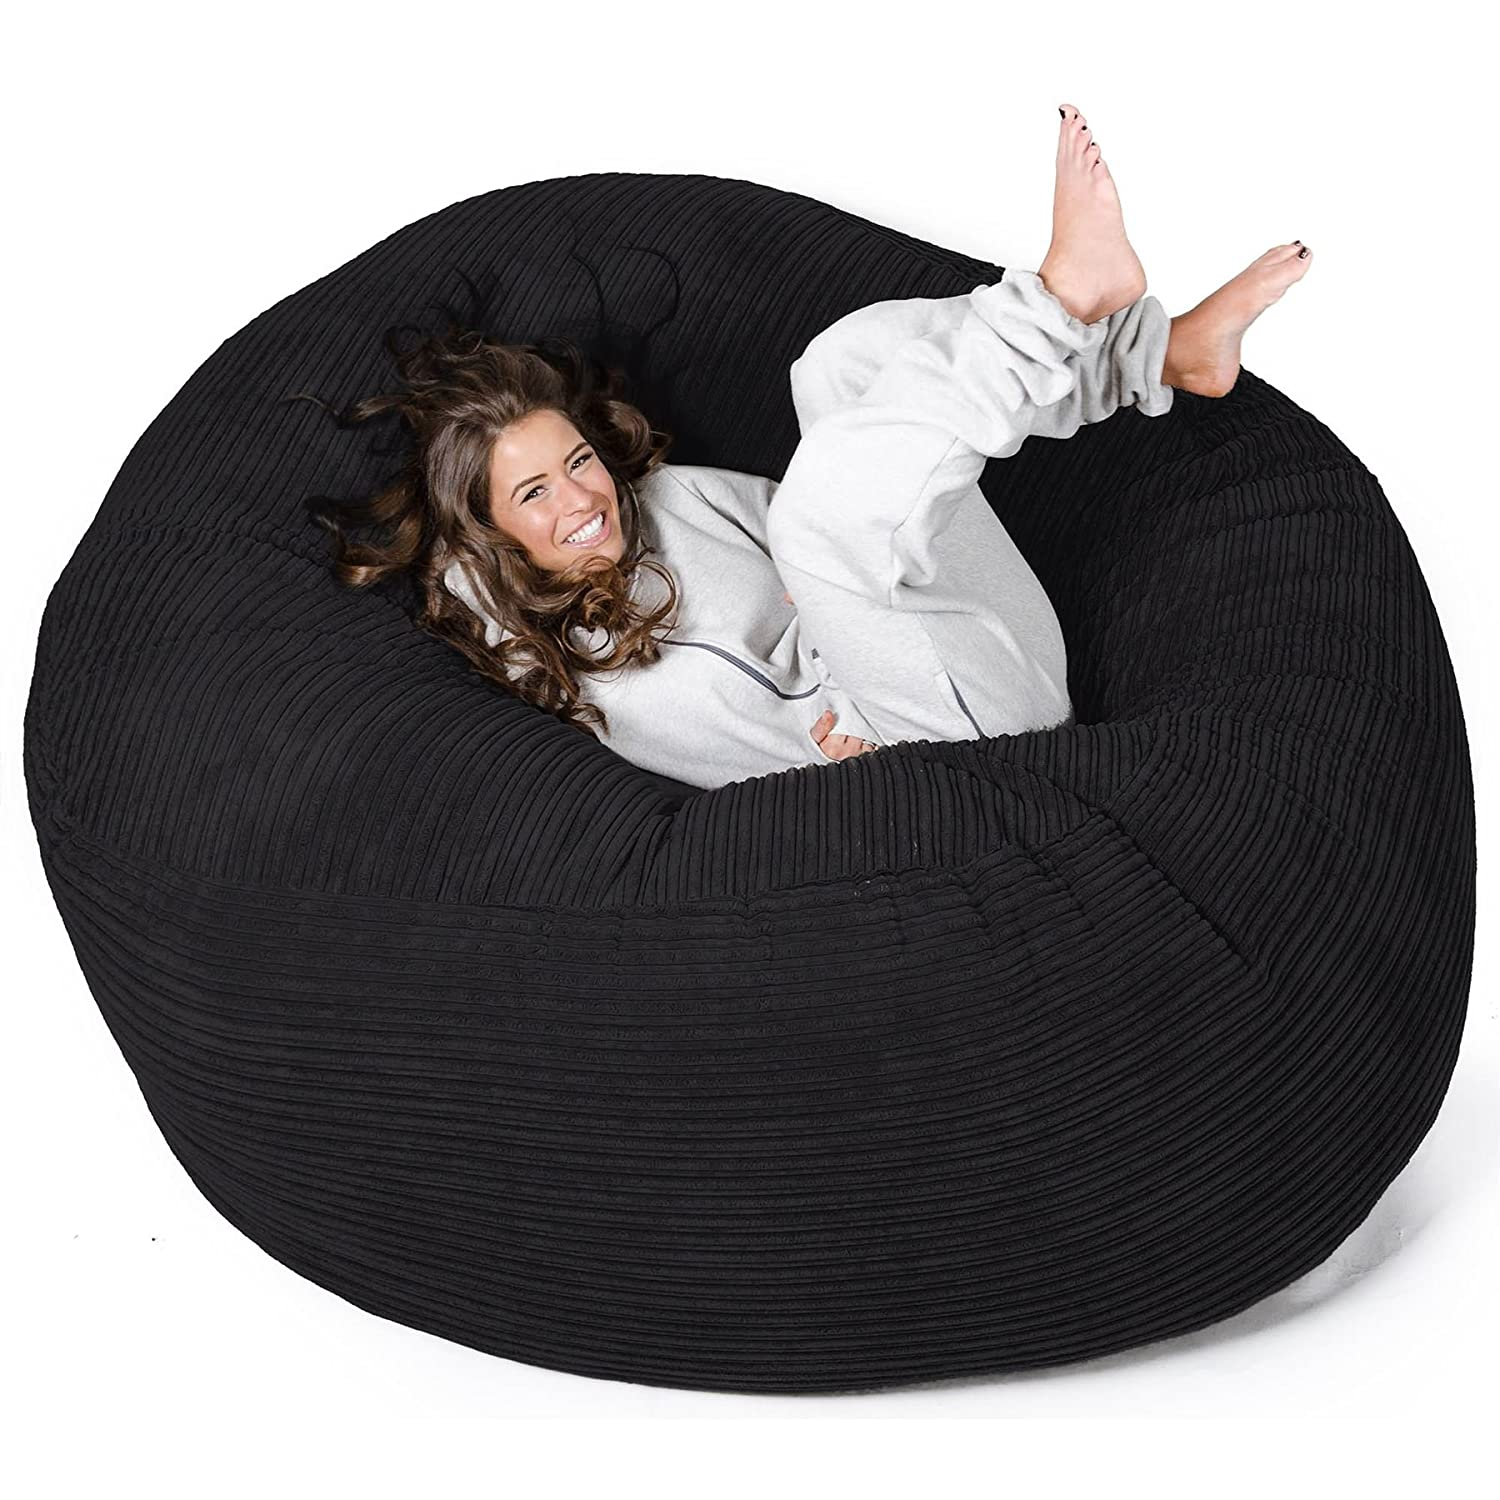 Sofa bean bag - Pouf geant doux ...